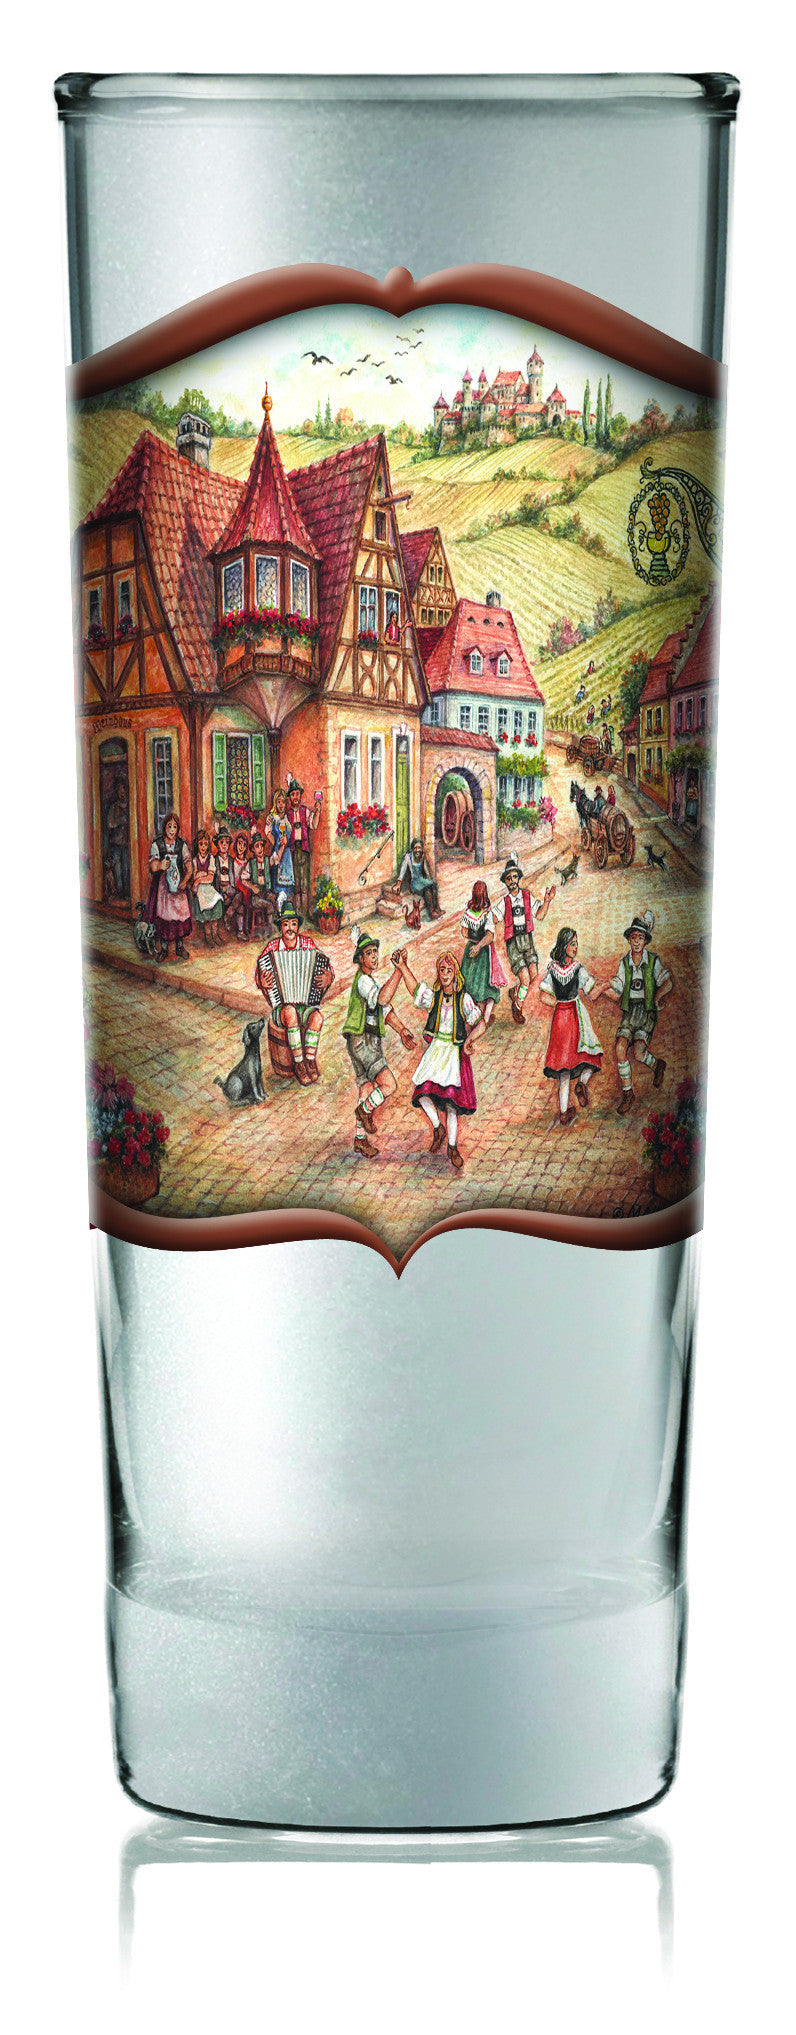 Oktoberfest German Shooter Village Dancers - Alcohol, Barware, Clear, Collectibles, Drinkware, Frosted, German, Germany, Glass, Home & Garden, PS- Oktoberfest Party Favors, PS-Party Favors, PS-Party Favors German, Shot Glasses, Shots-Glass, Tableware